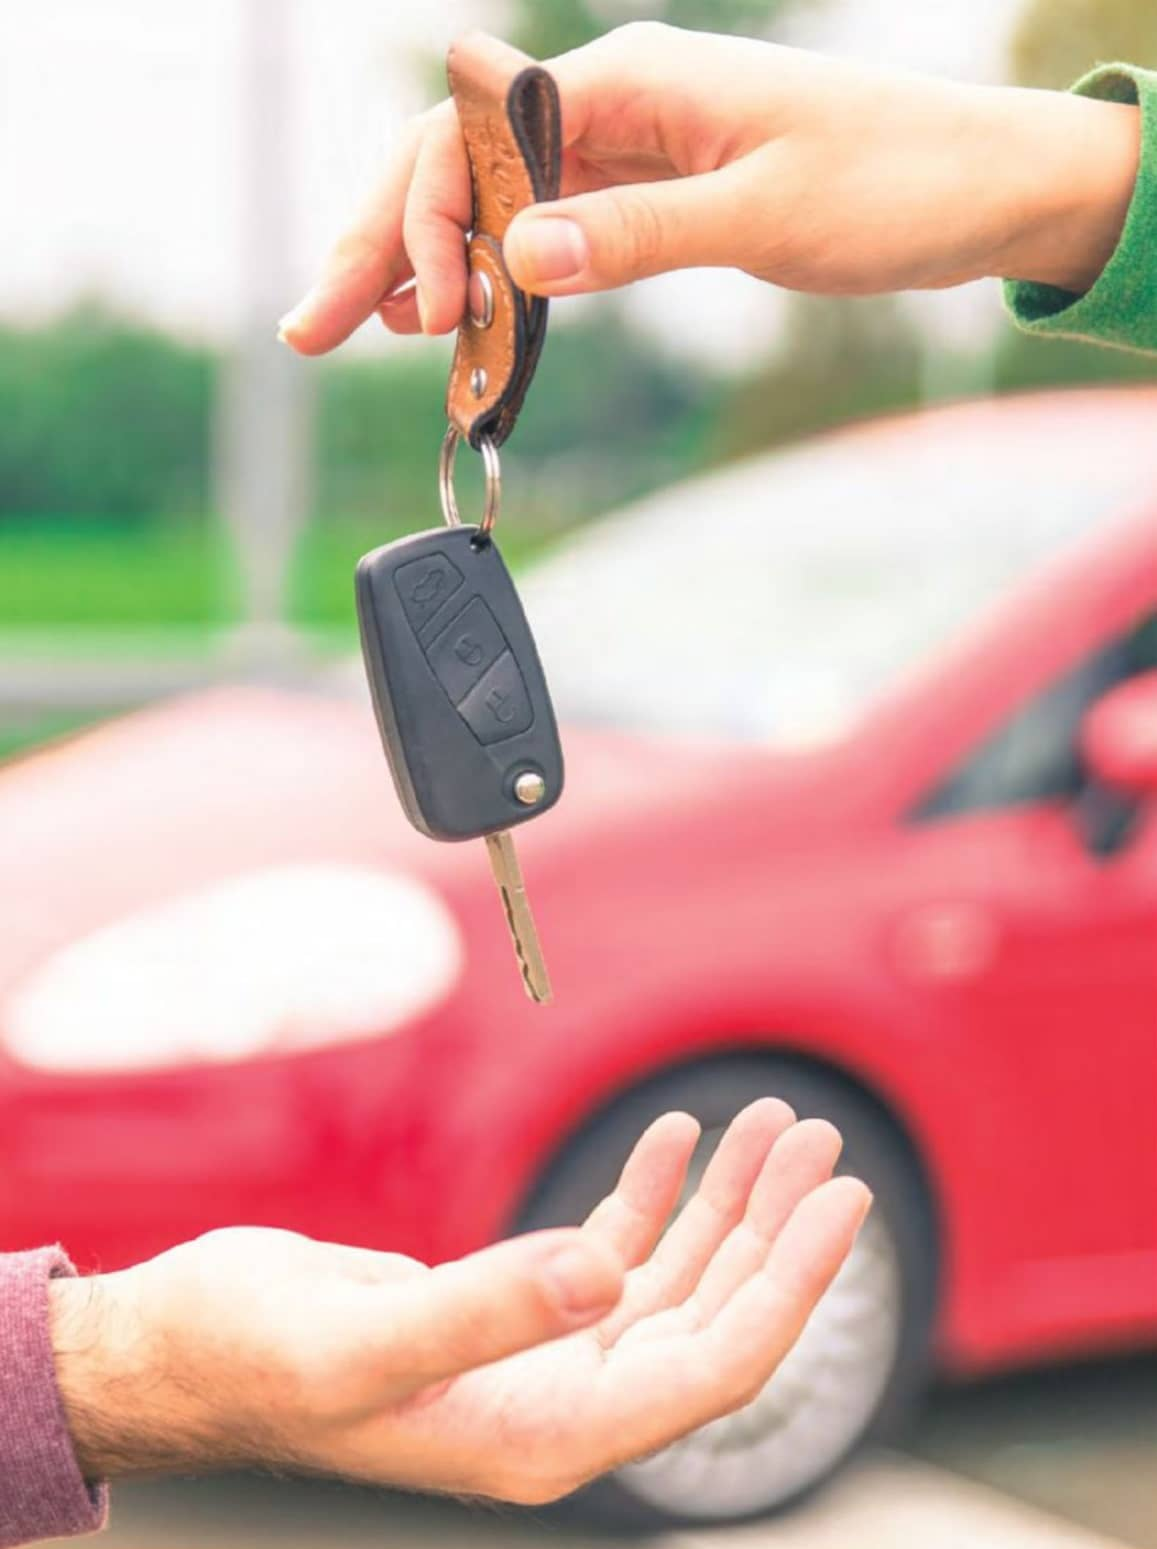 Finding Your New, Pre-Loved Ride